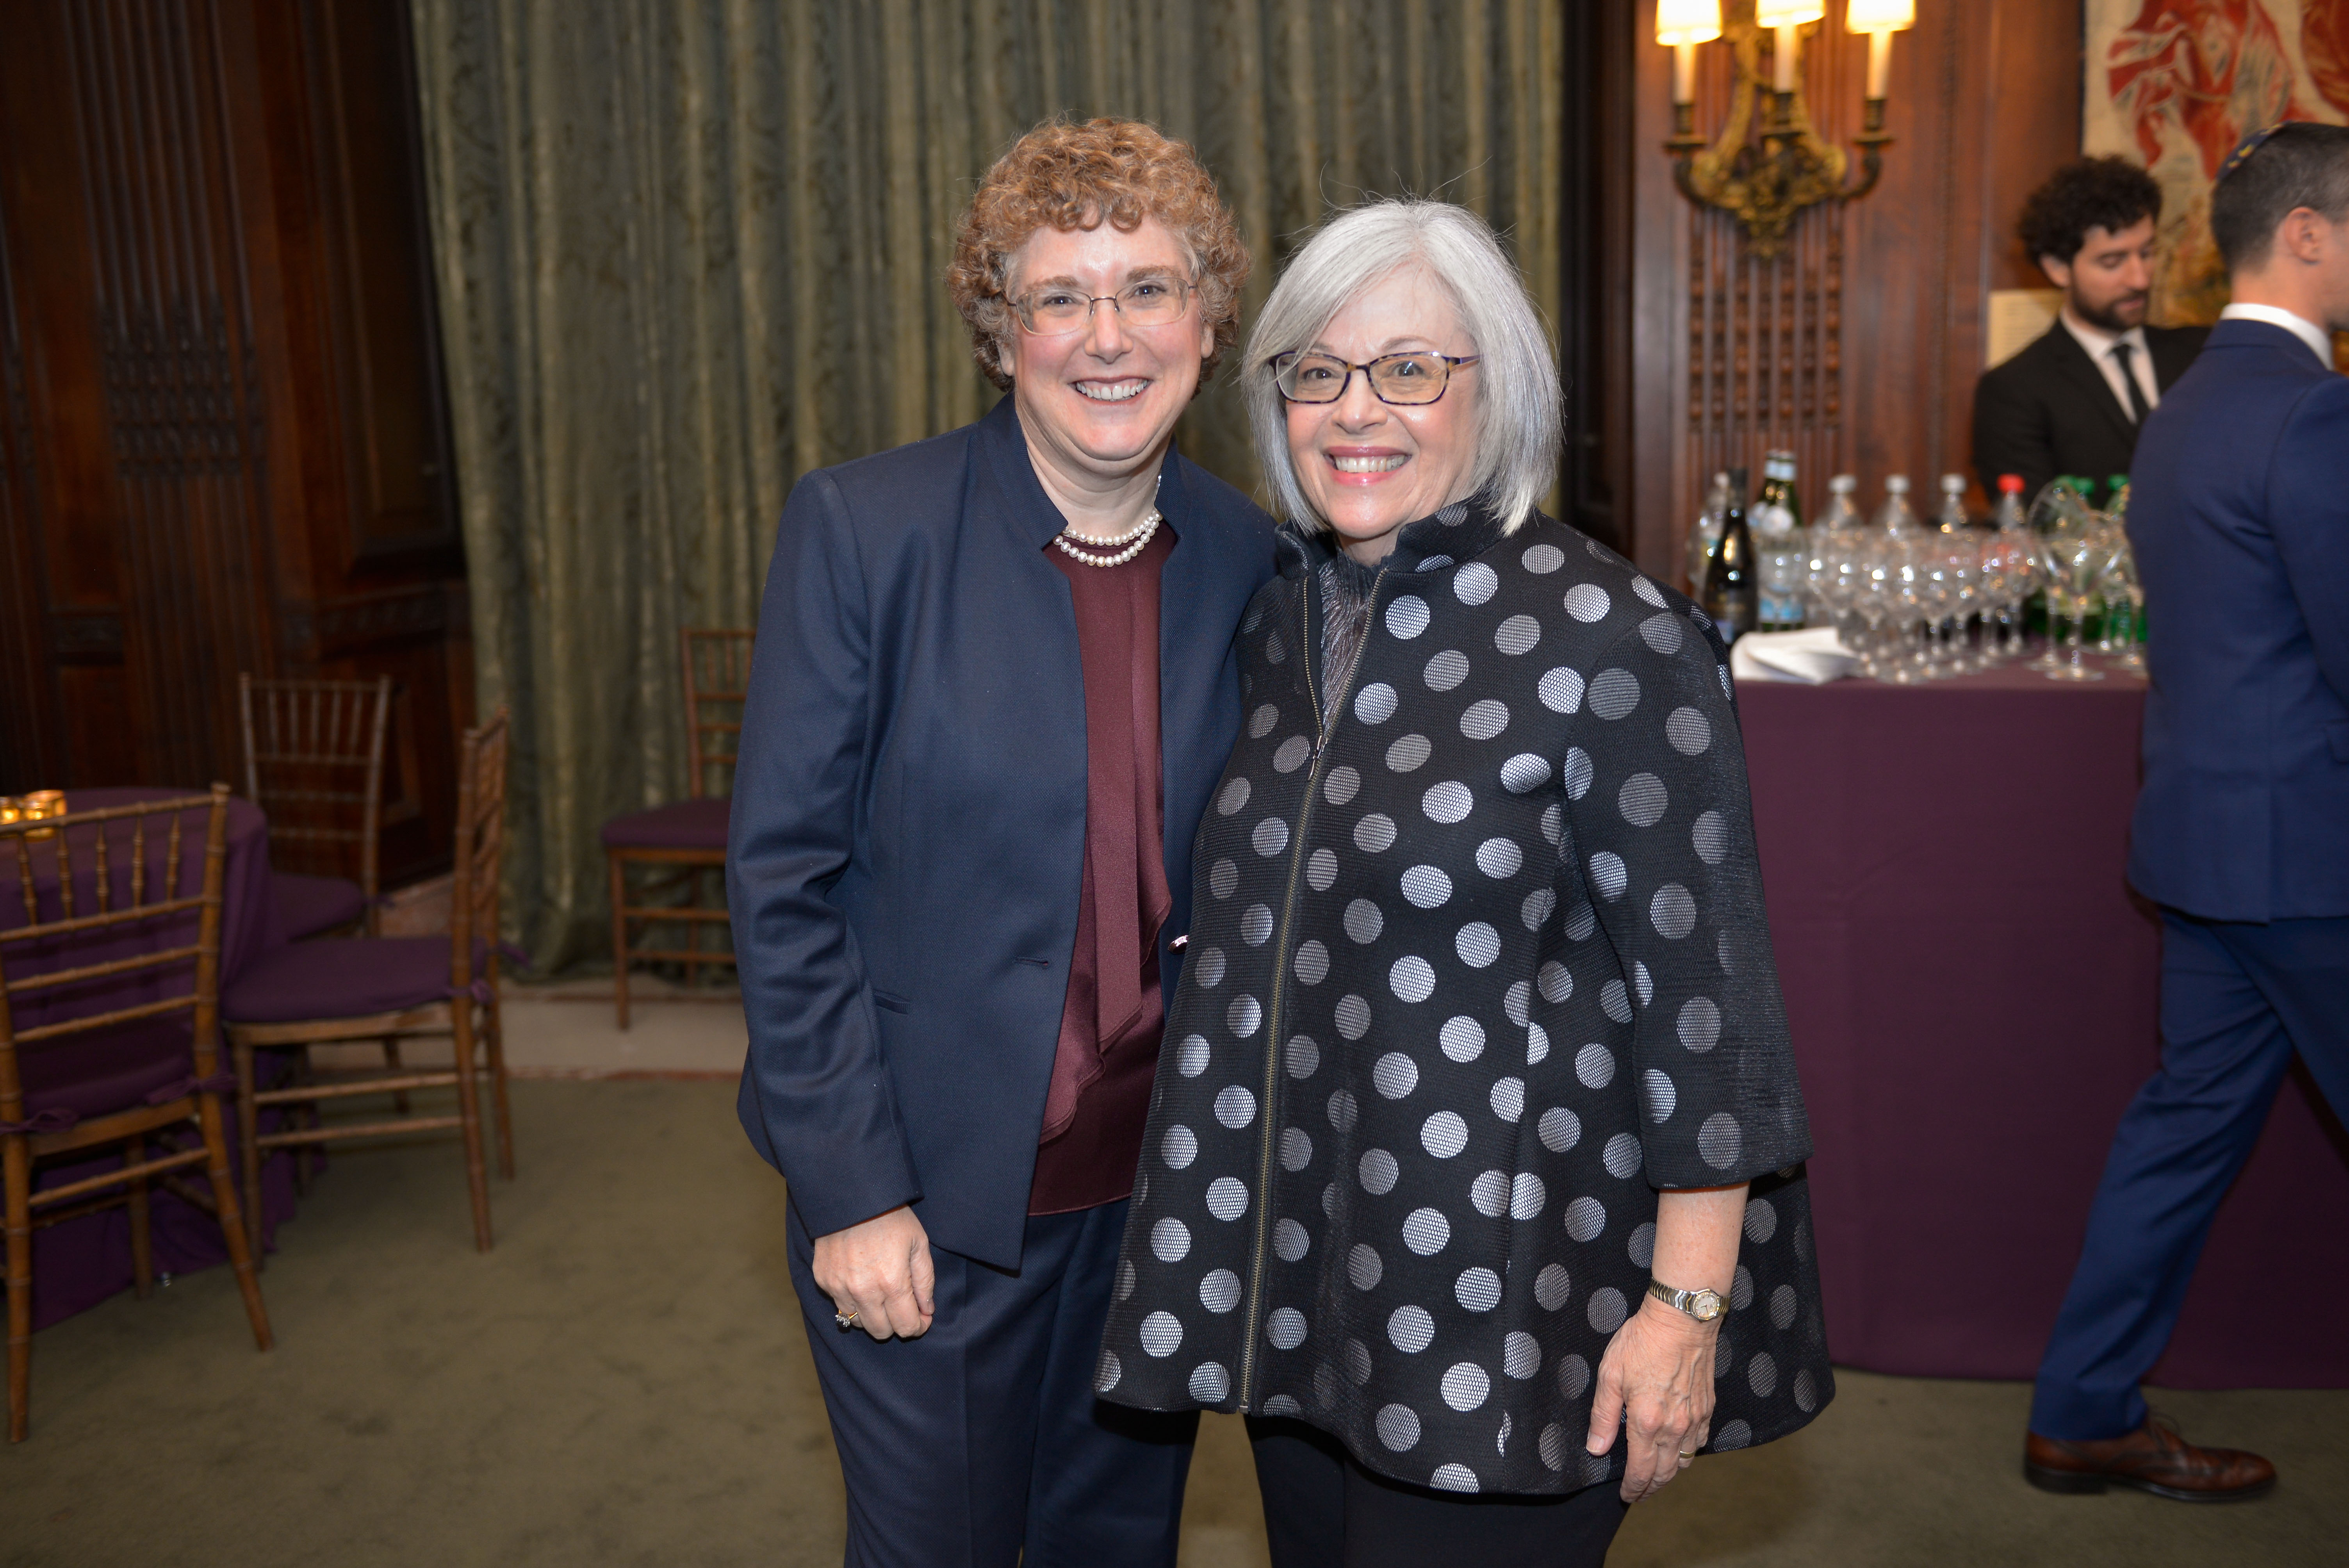 From left: 2018 Covenant Award Recipient Dr. Susie Tanchel and Covenant Foundation Board Chair Chery Finkel.